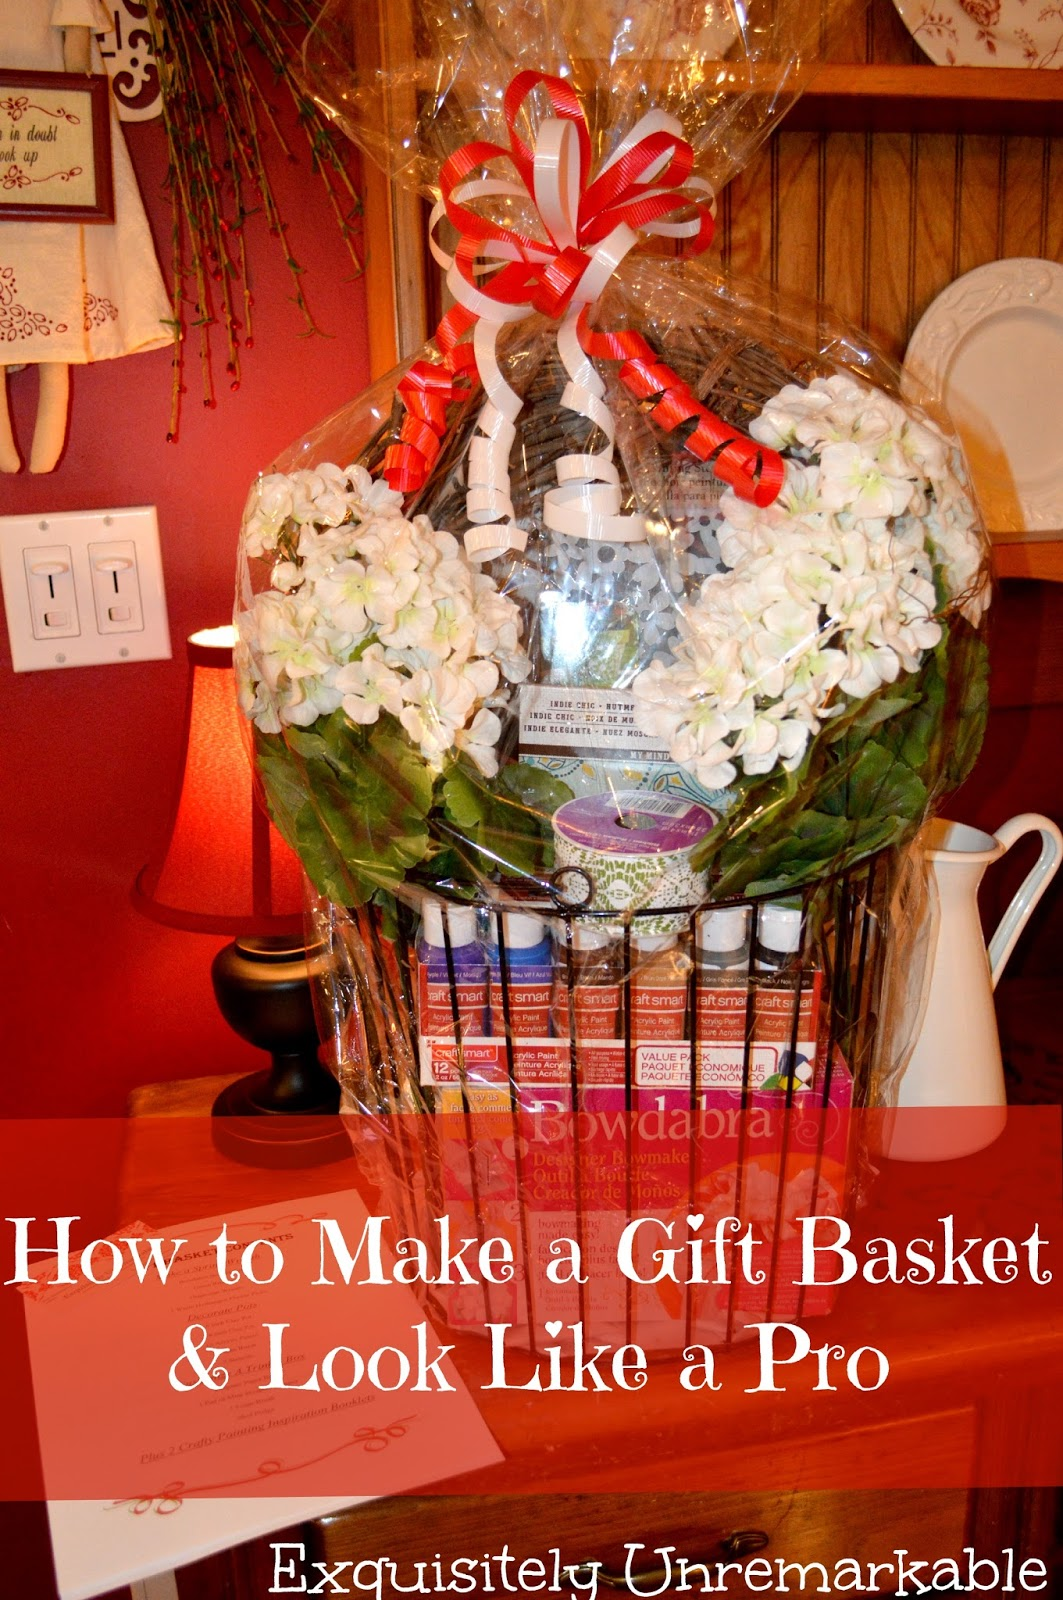 Create A Gift Basket And Look Like Pro